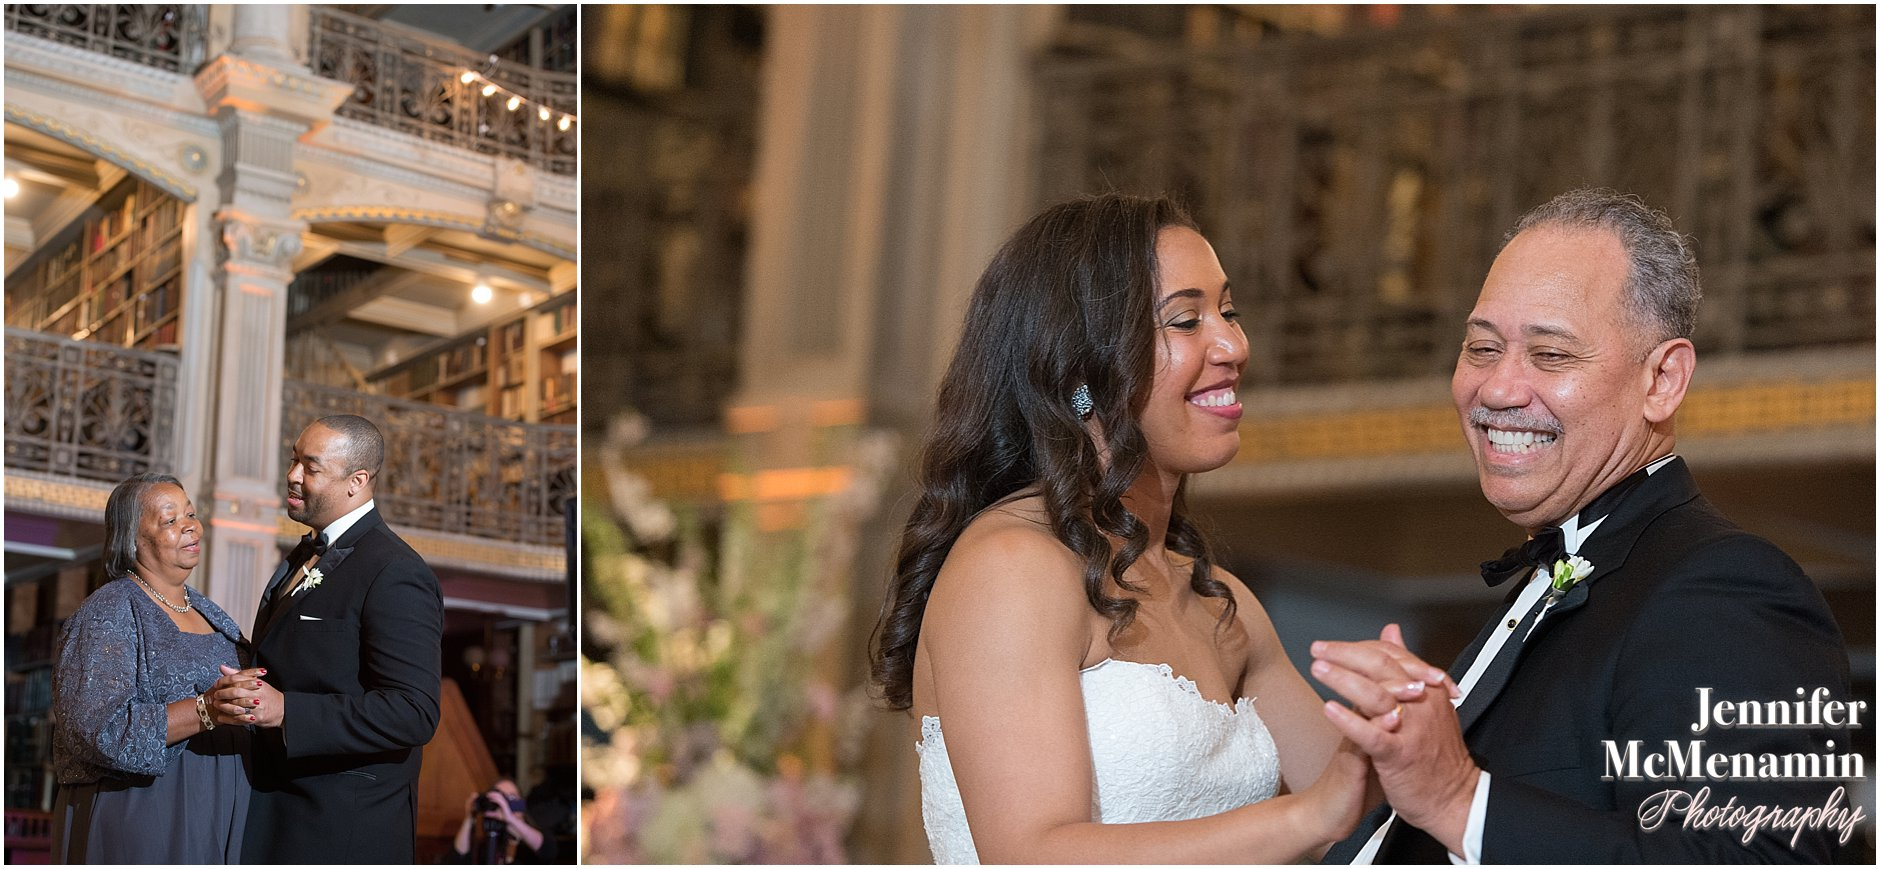 082-Peabody-Library-Wedding_WilsonPatterson_03292-0714_Jennifer-McMenamin-Photography